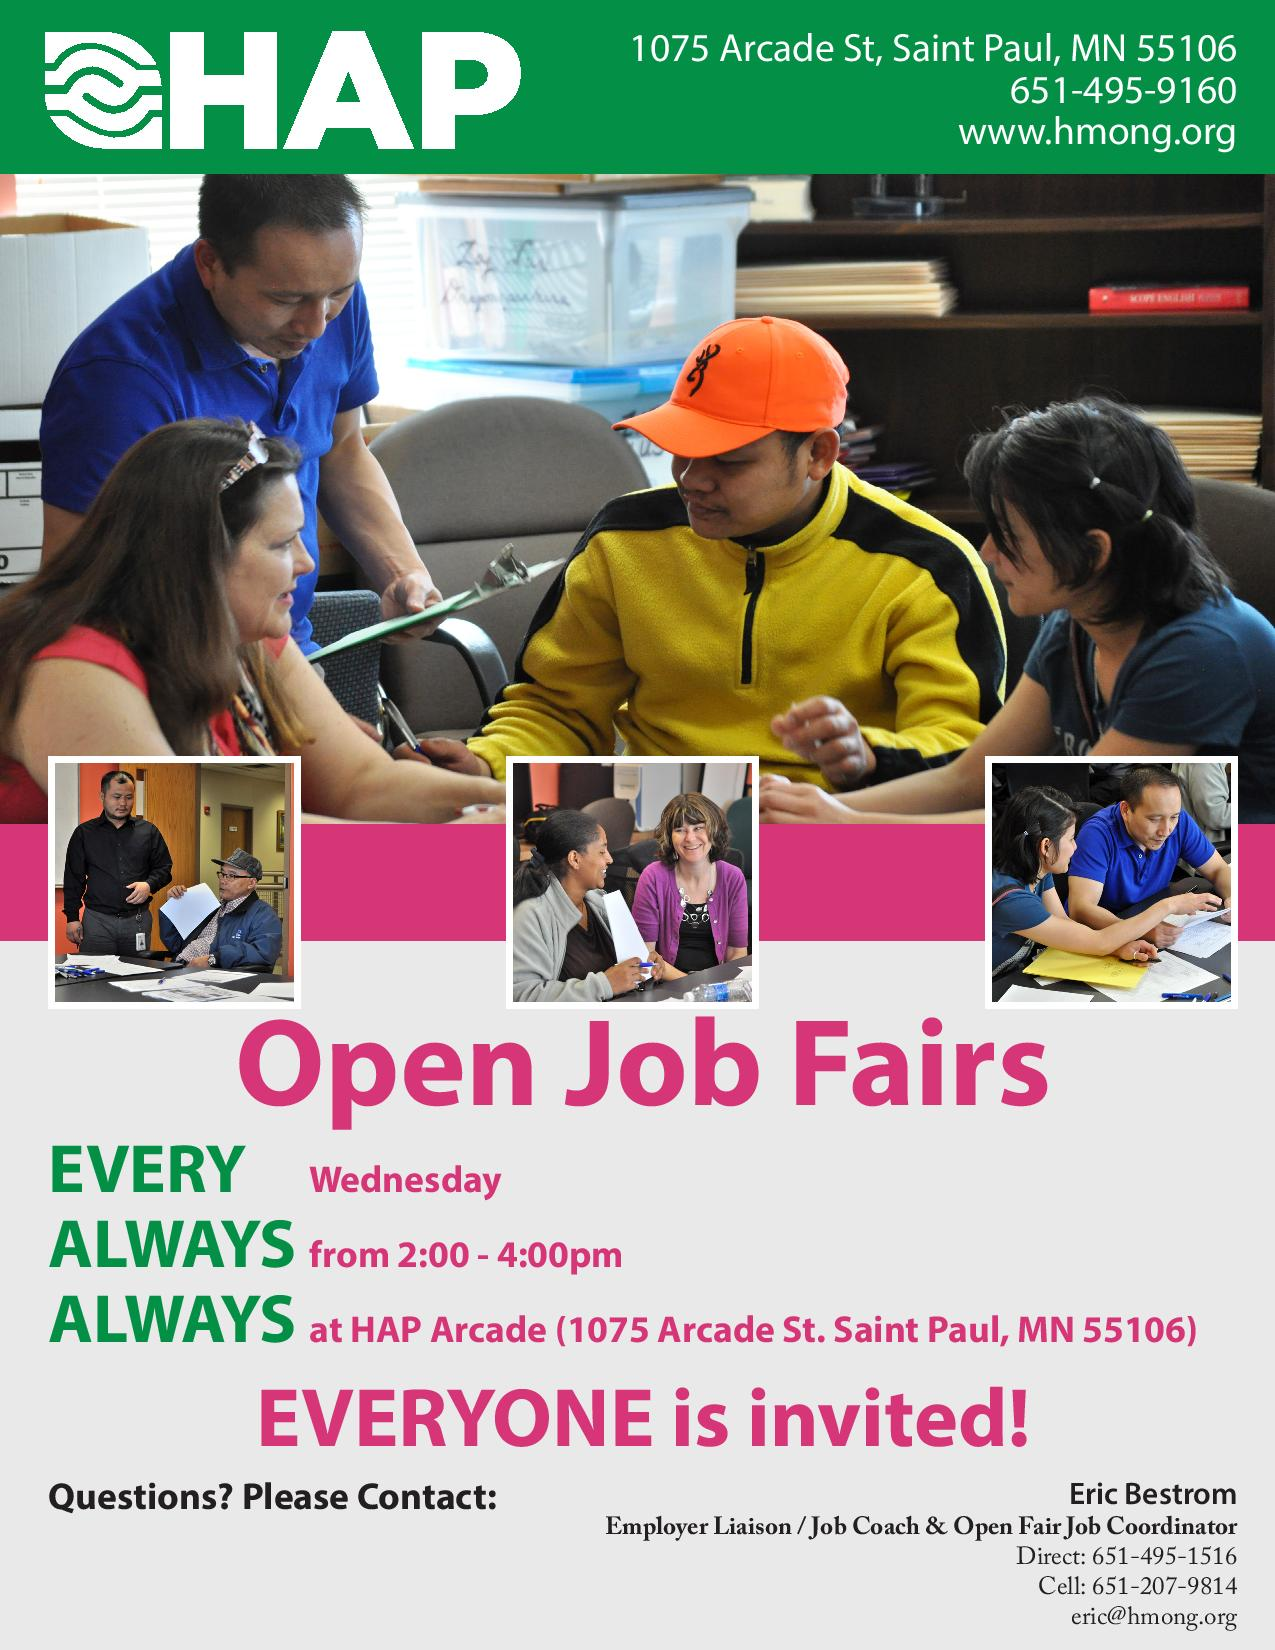 HAP_Open_Job_Fairs_Flyer_4-15-2016-page-001.jpg